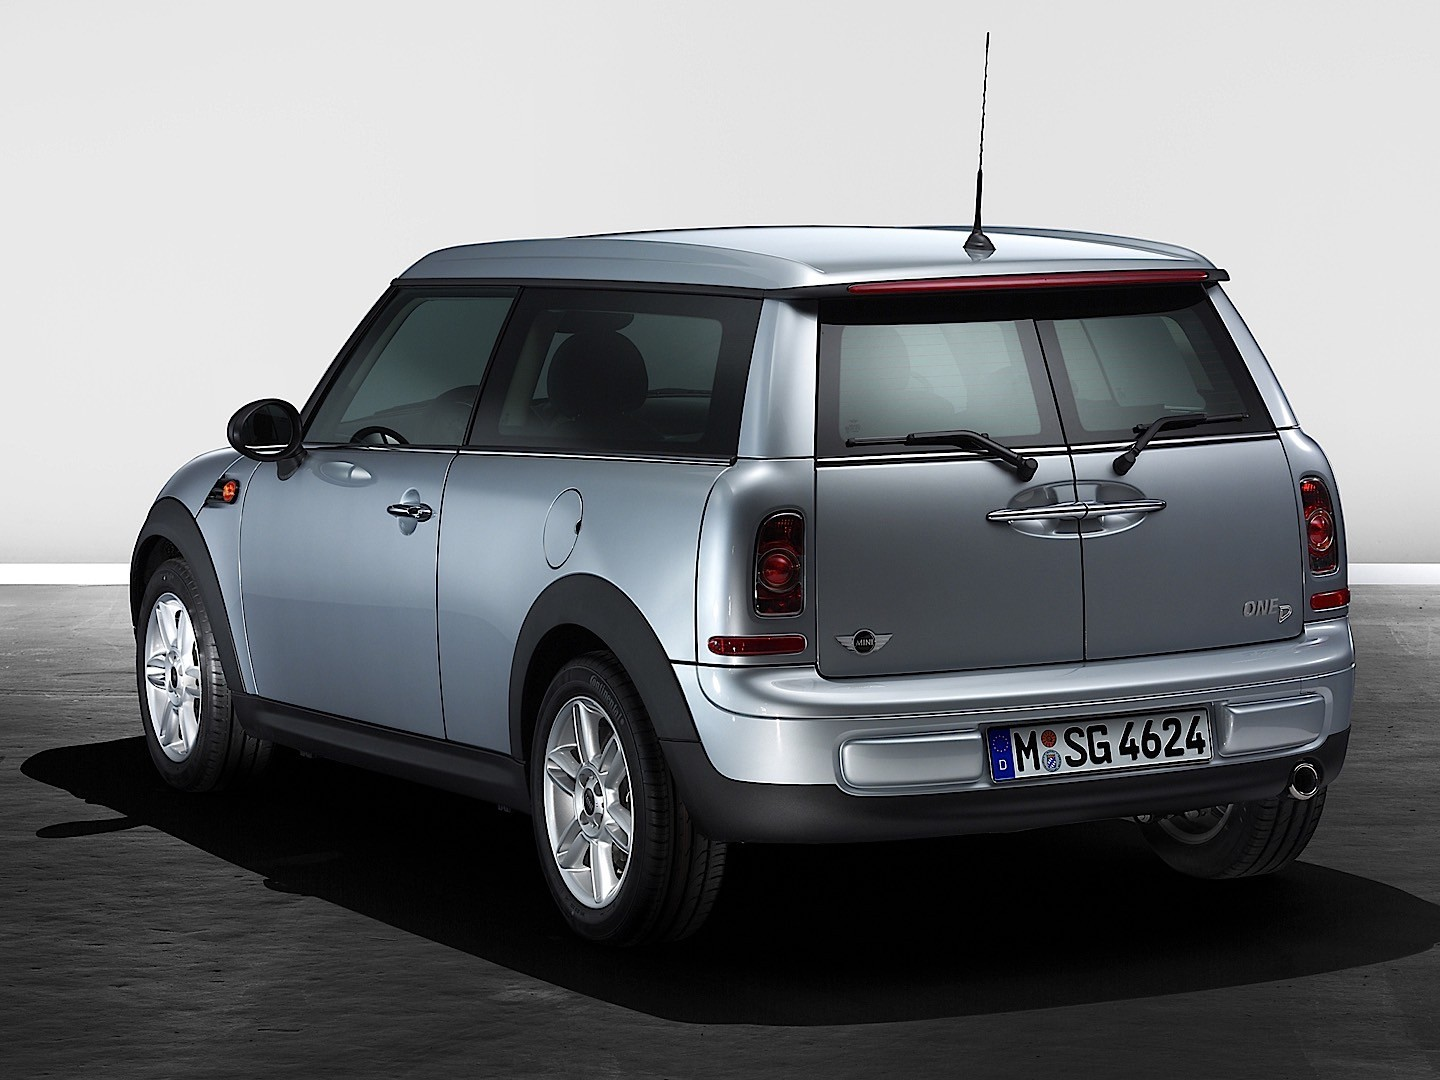 mini clubman specs 2007 2008 2009 2010 2011 2012 2013 2014 2015 autoevolution. Black Bedroom Furniture Sets. Home Design Ideas